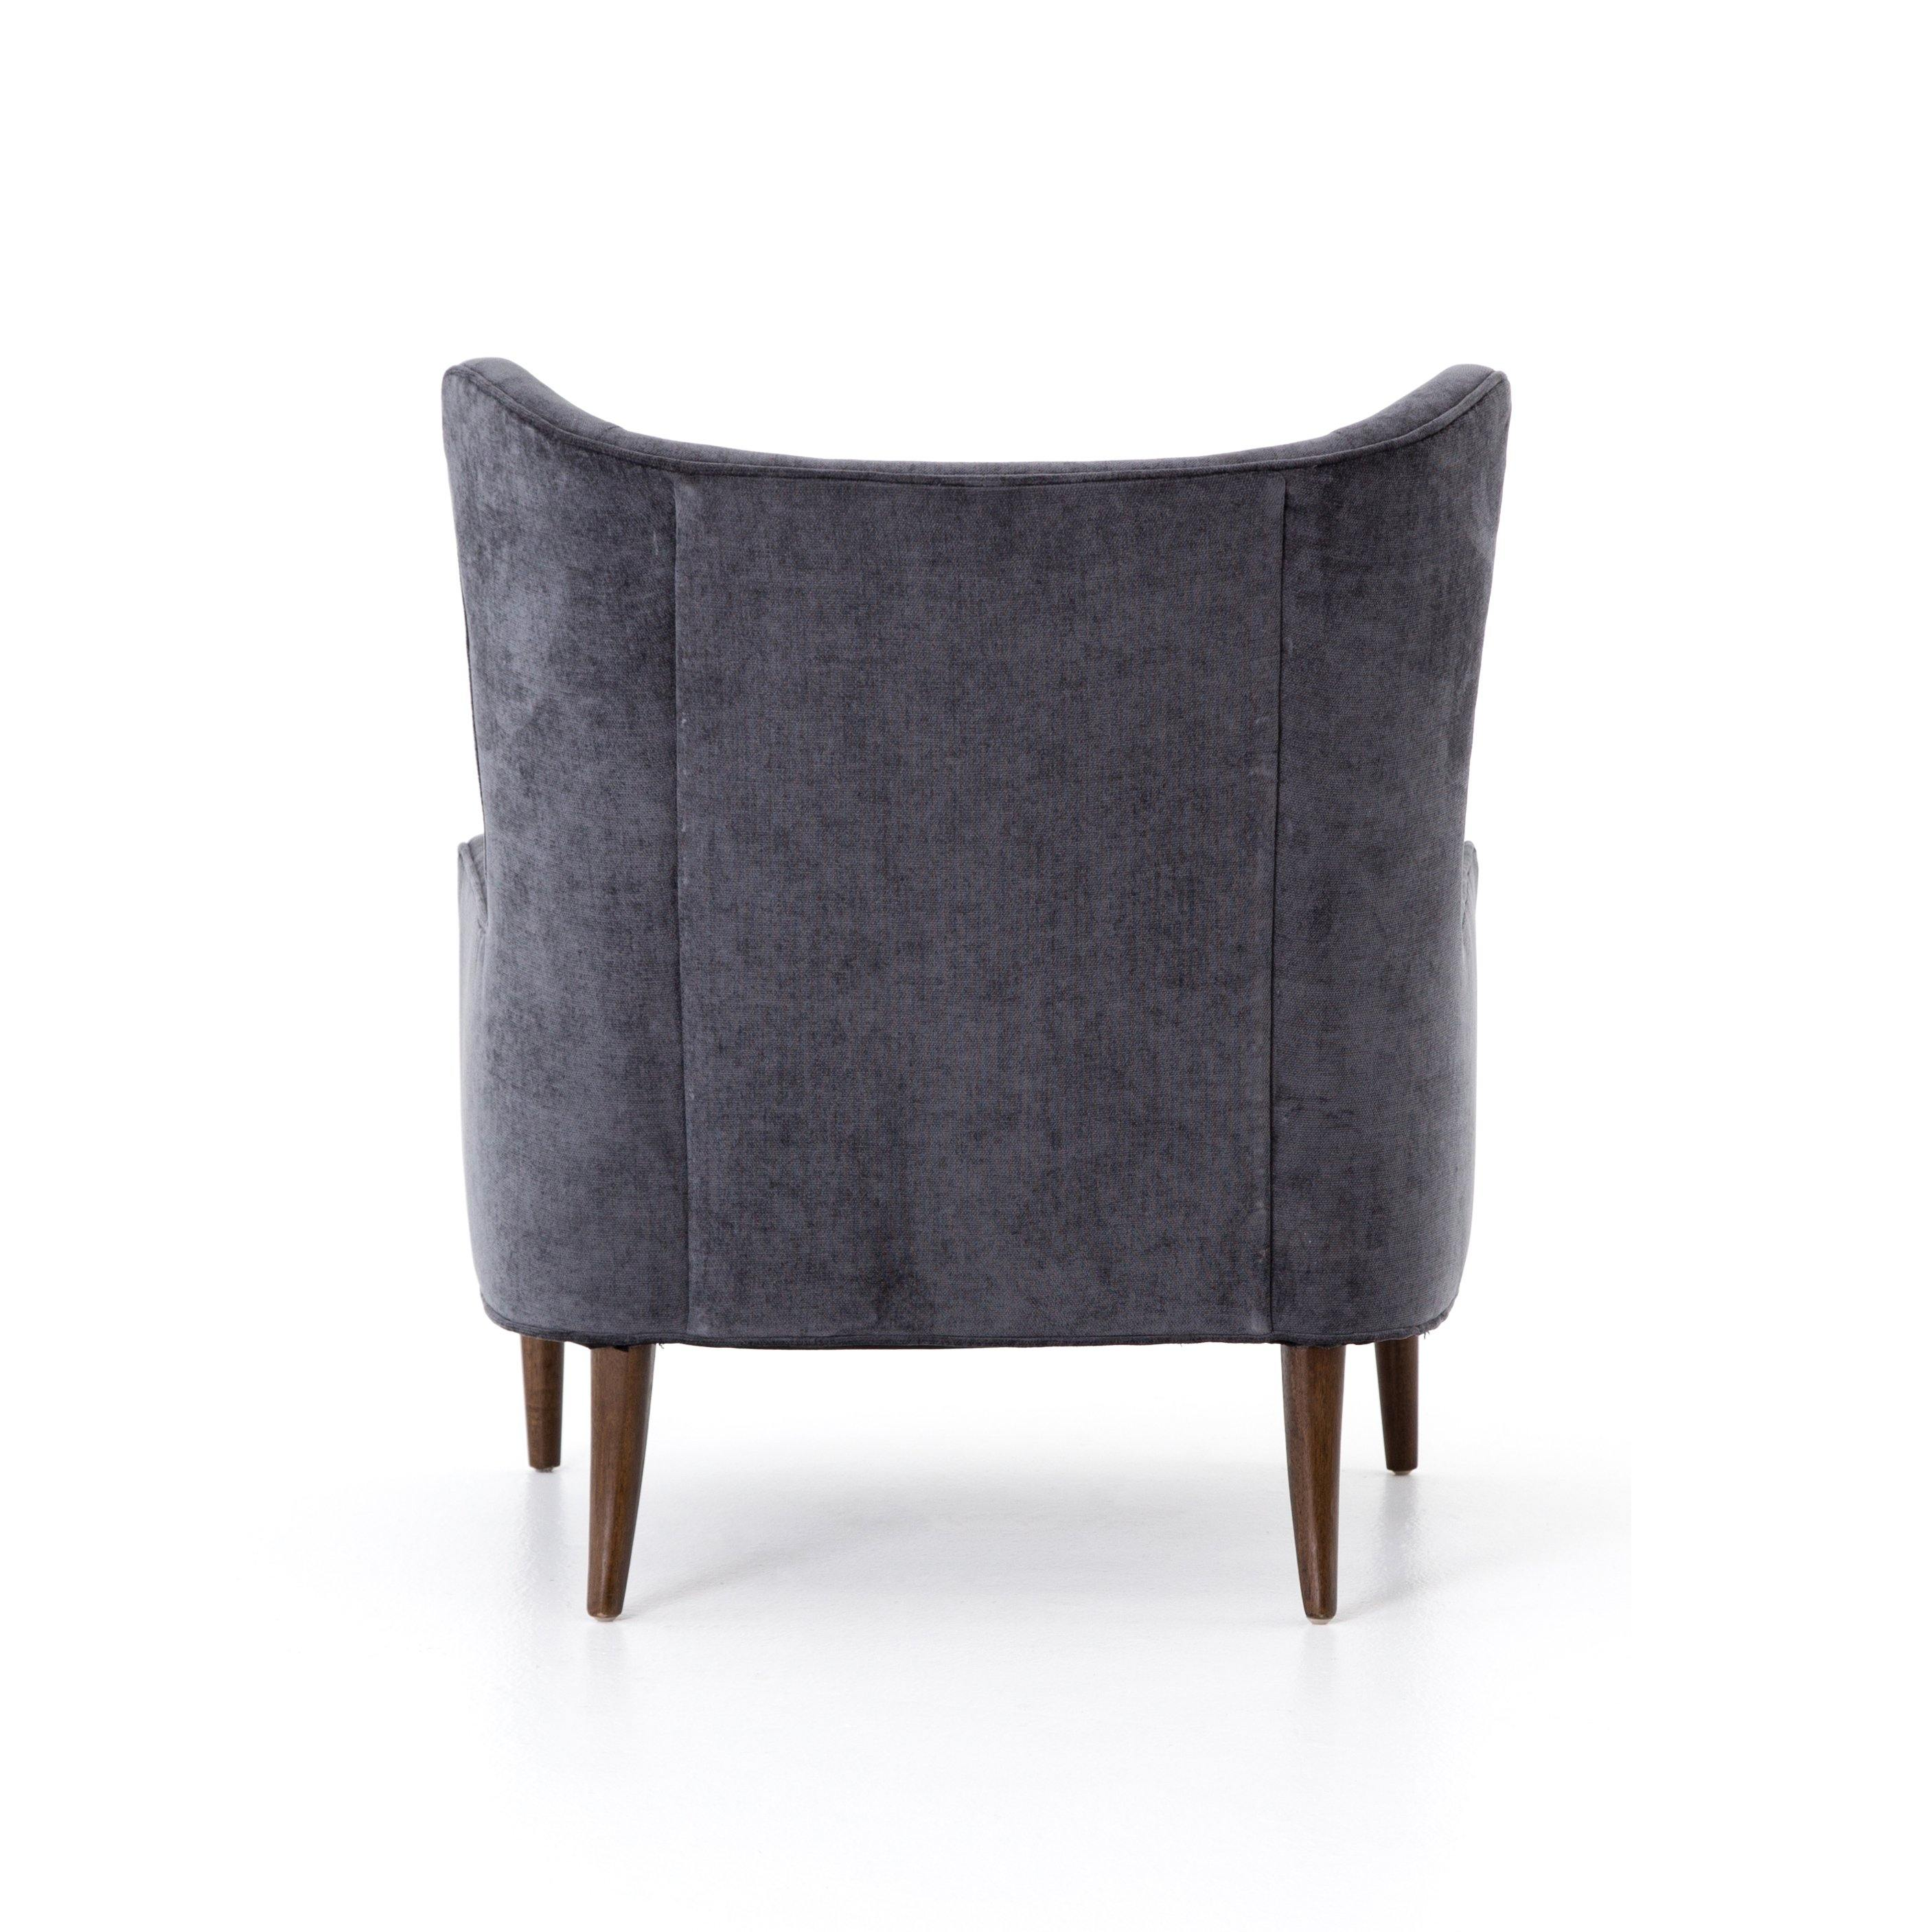 Clermont Chair - Charcoal Worn Velvet - Reimagine Designs